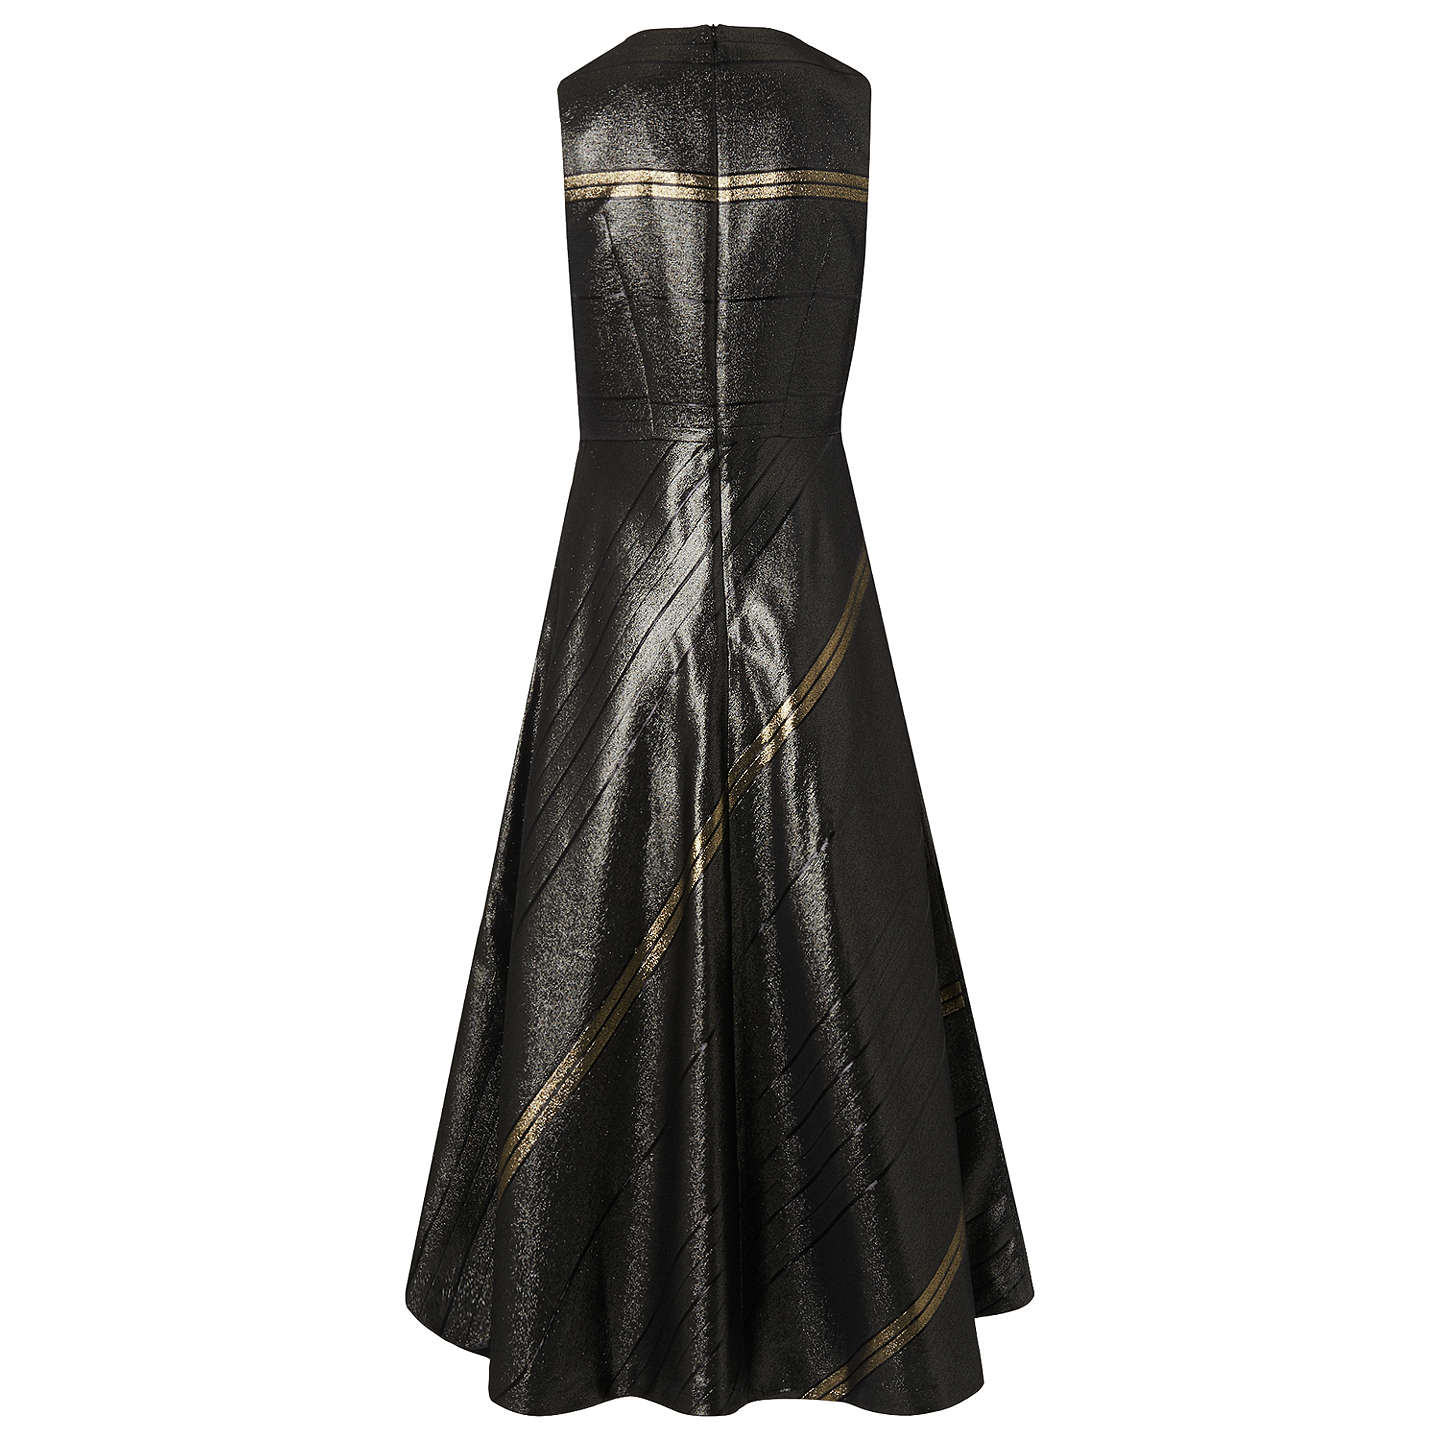 BuyL.K. Bennett Polly Dress, Black/Gold, 6 Online at johnlewis.com